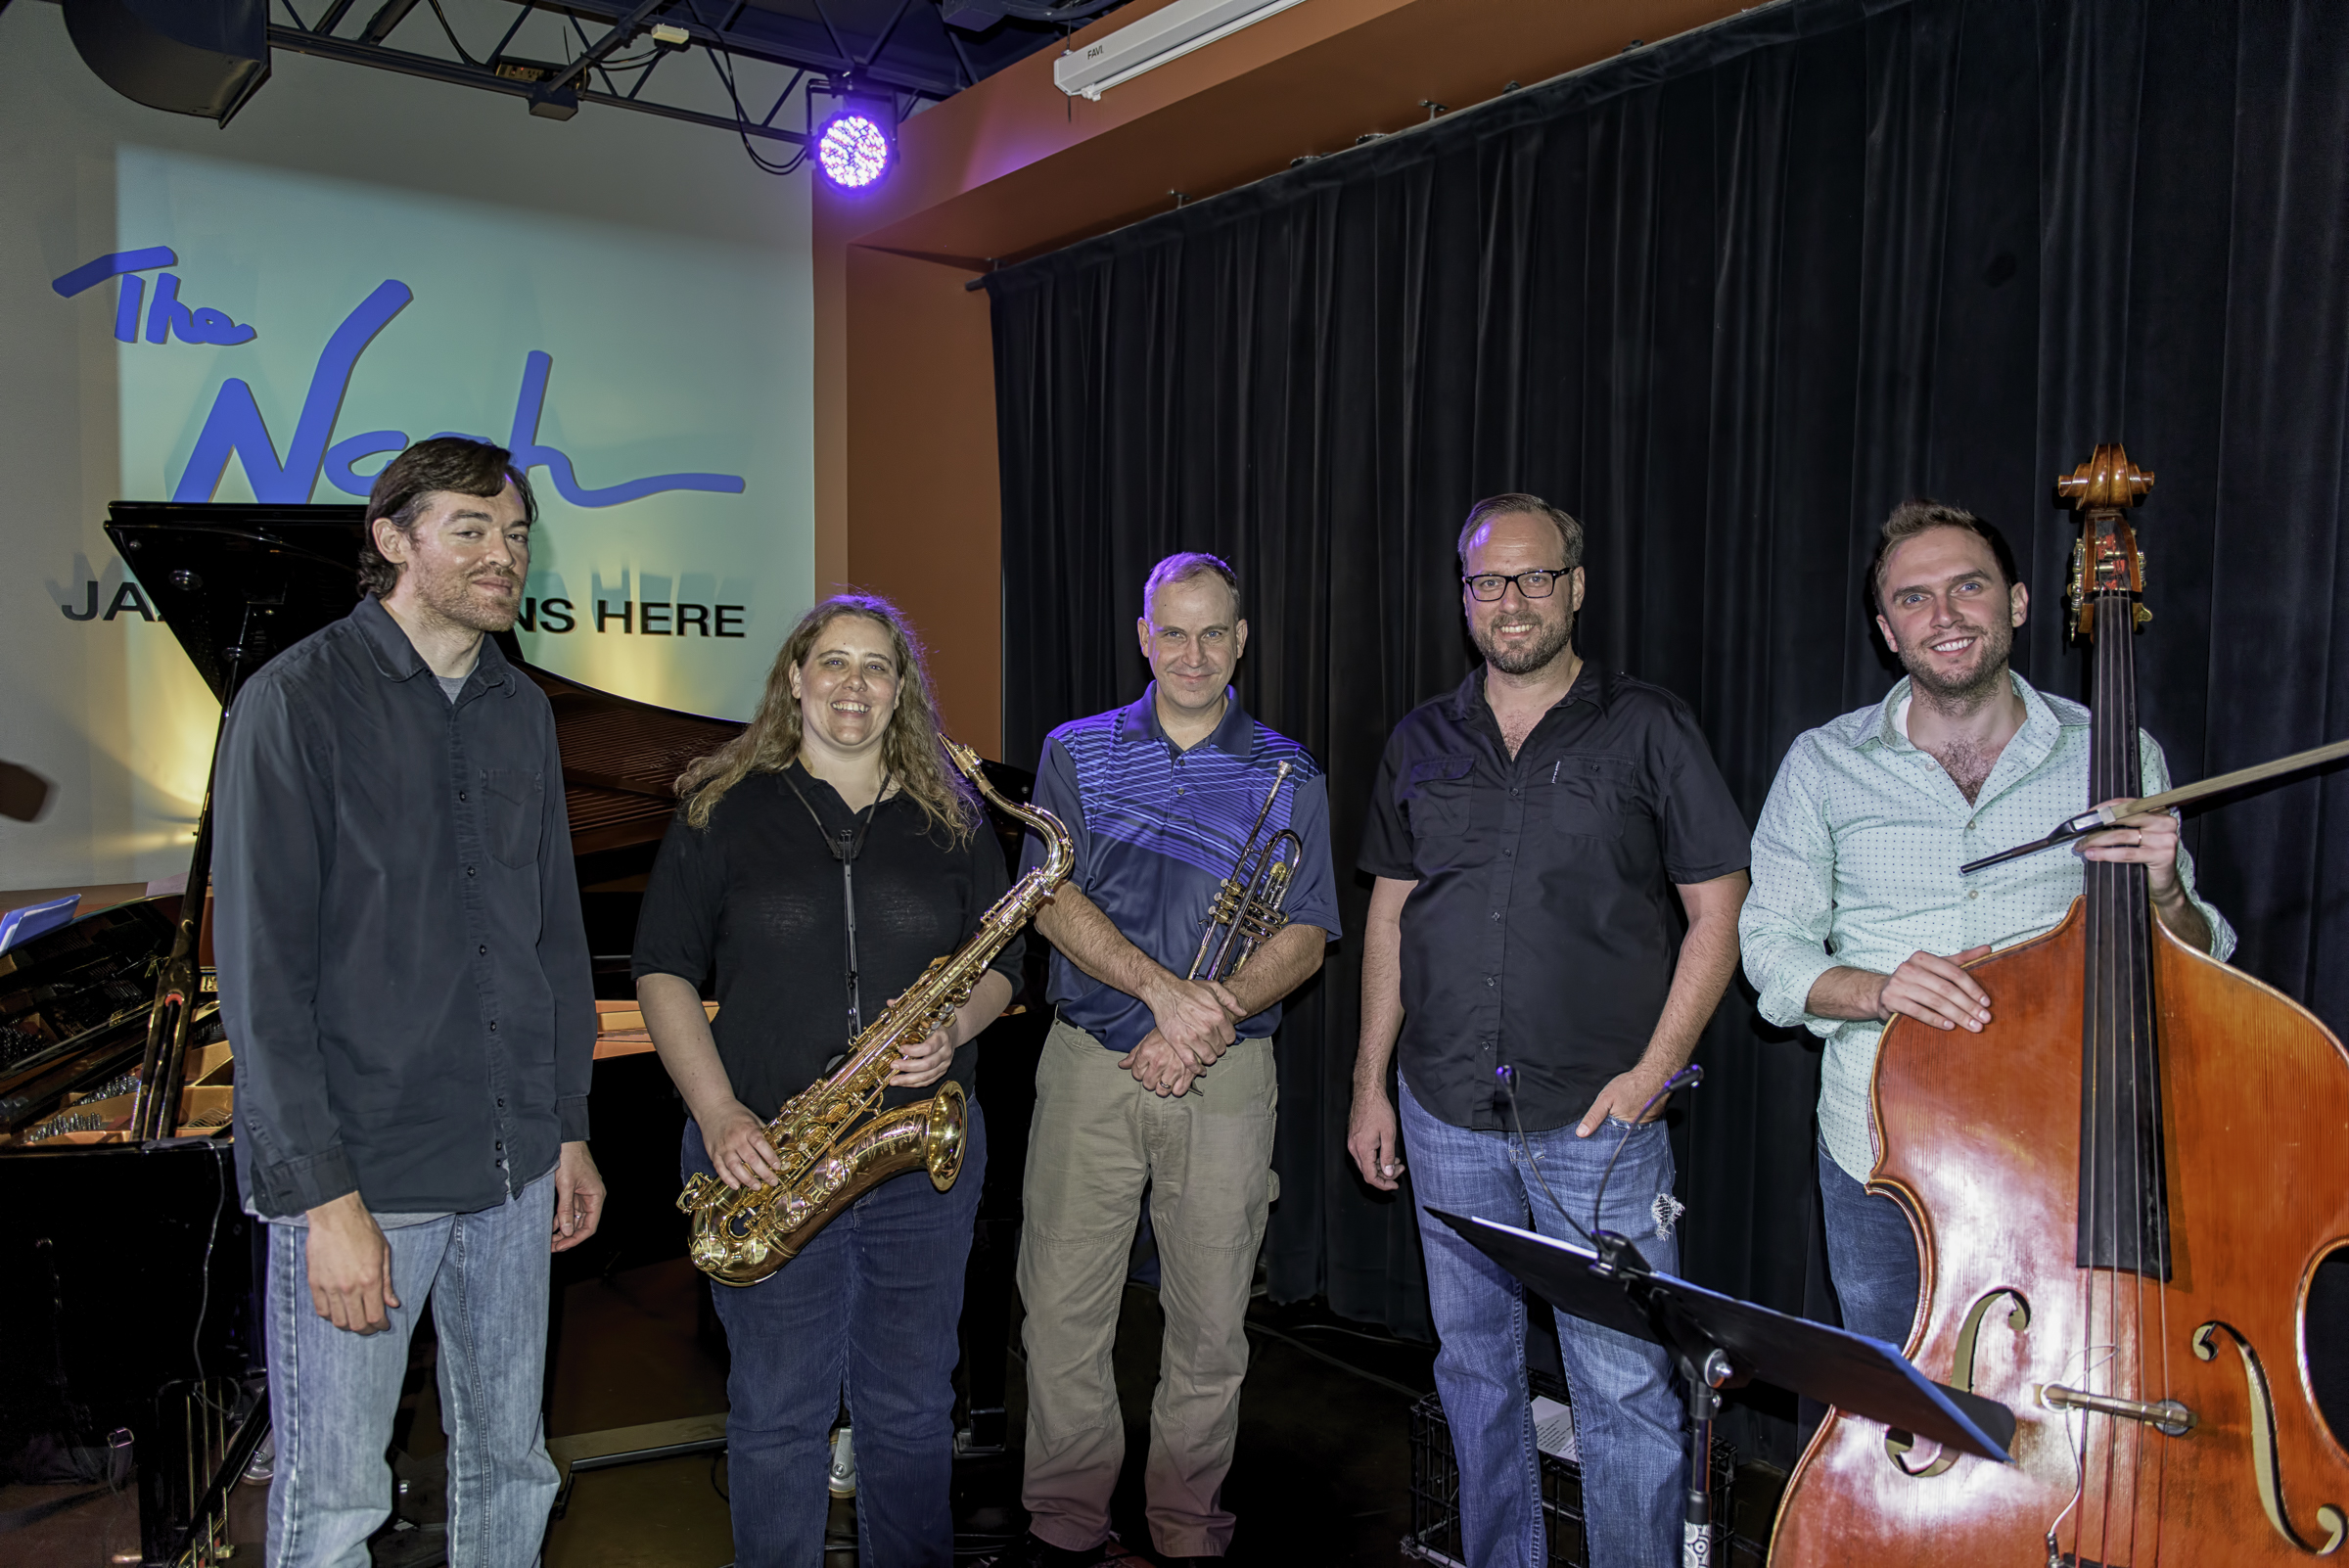 Michael Collins, Monica Shriver, Nick Cooper, EriK Teichman and Ben Hedquist with the Monica Shriver Project at the Nash in Phoenix